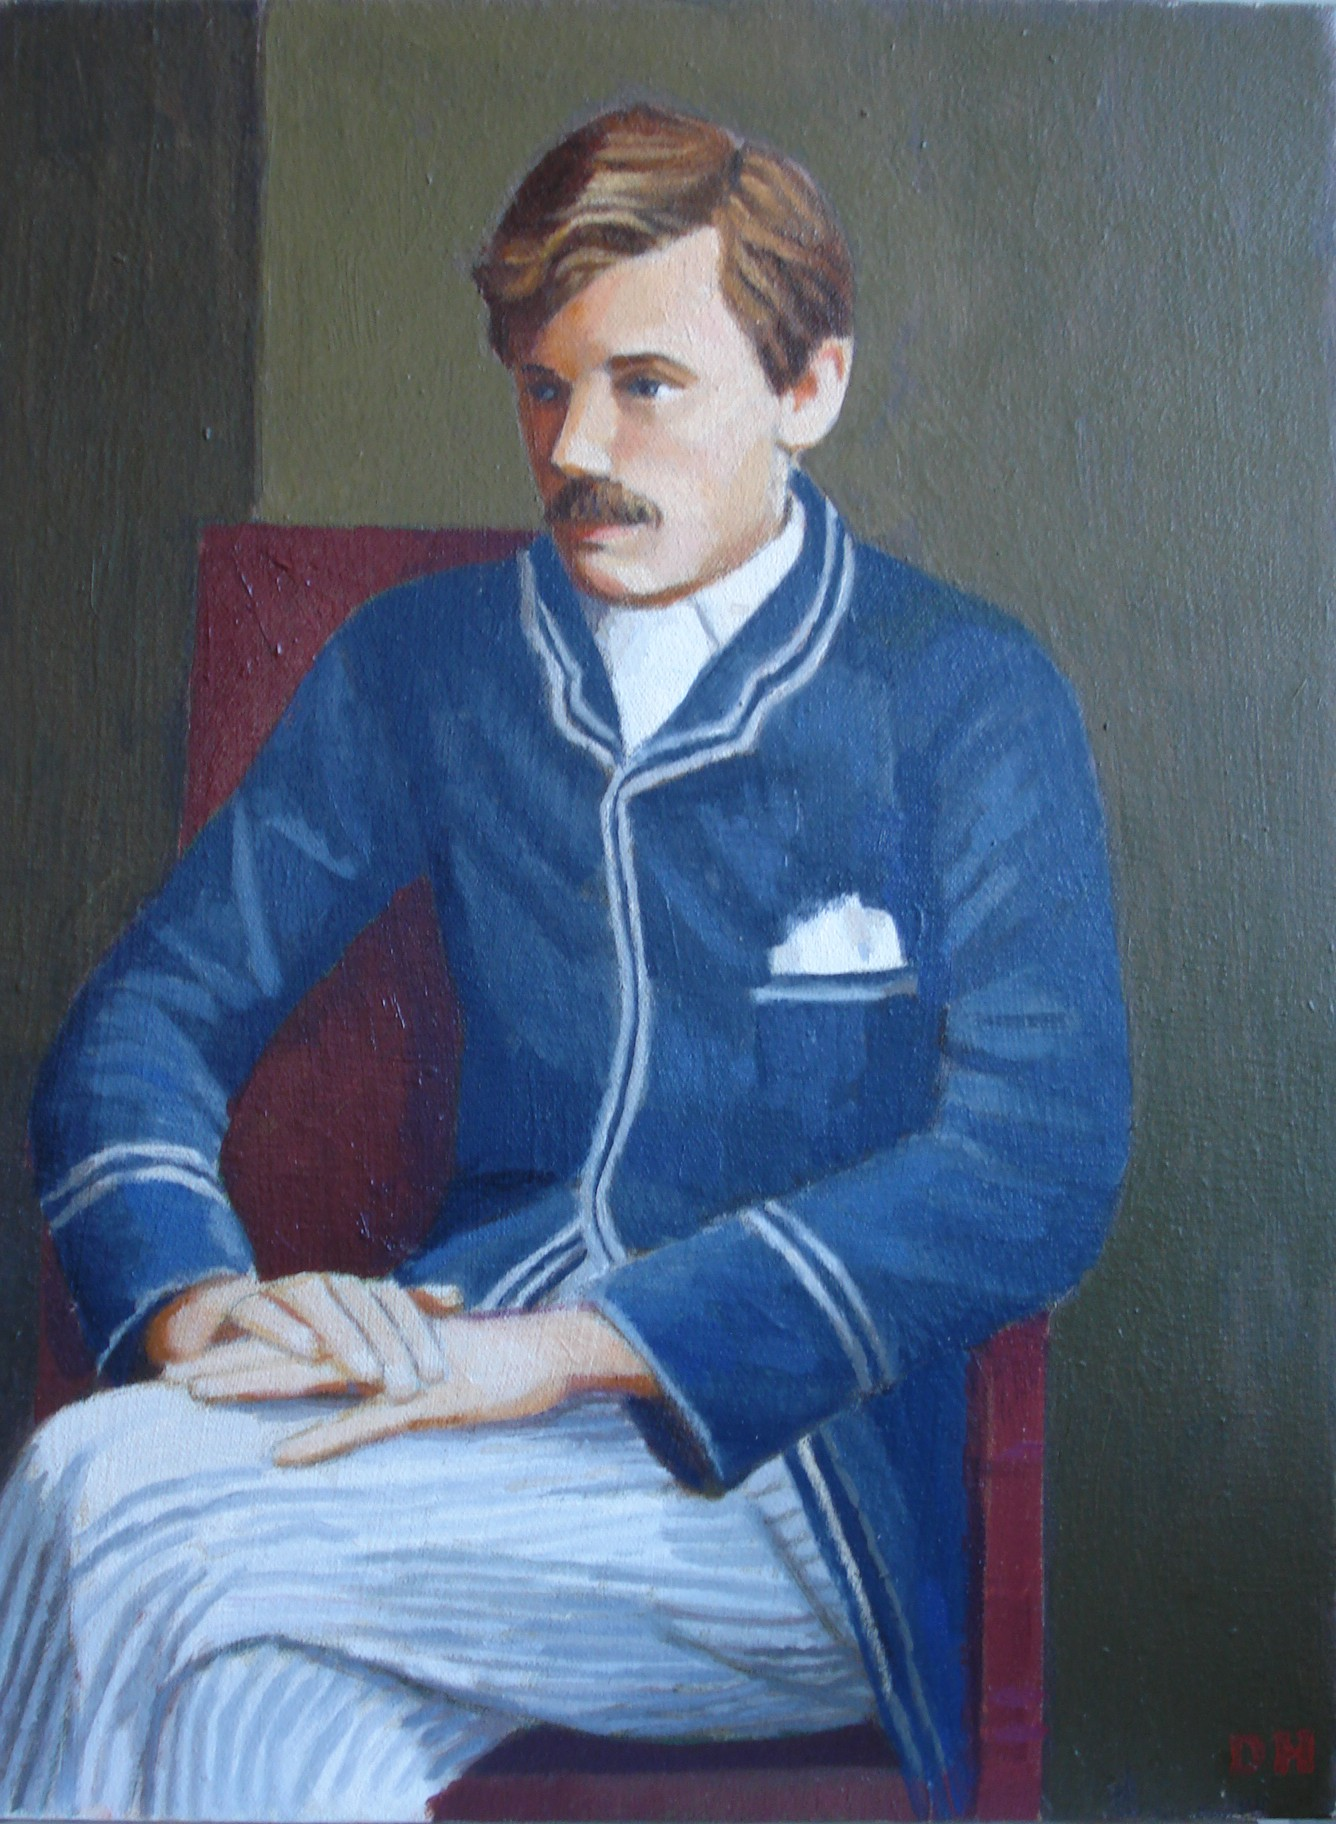 Duncan Hannah is known for painterly realism. This is his portrait of 19th century English poet Ernest Dowson, a member of the Decadents.